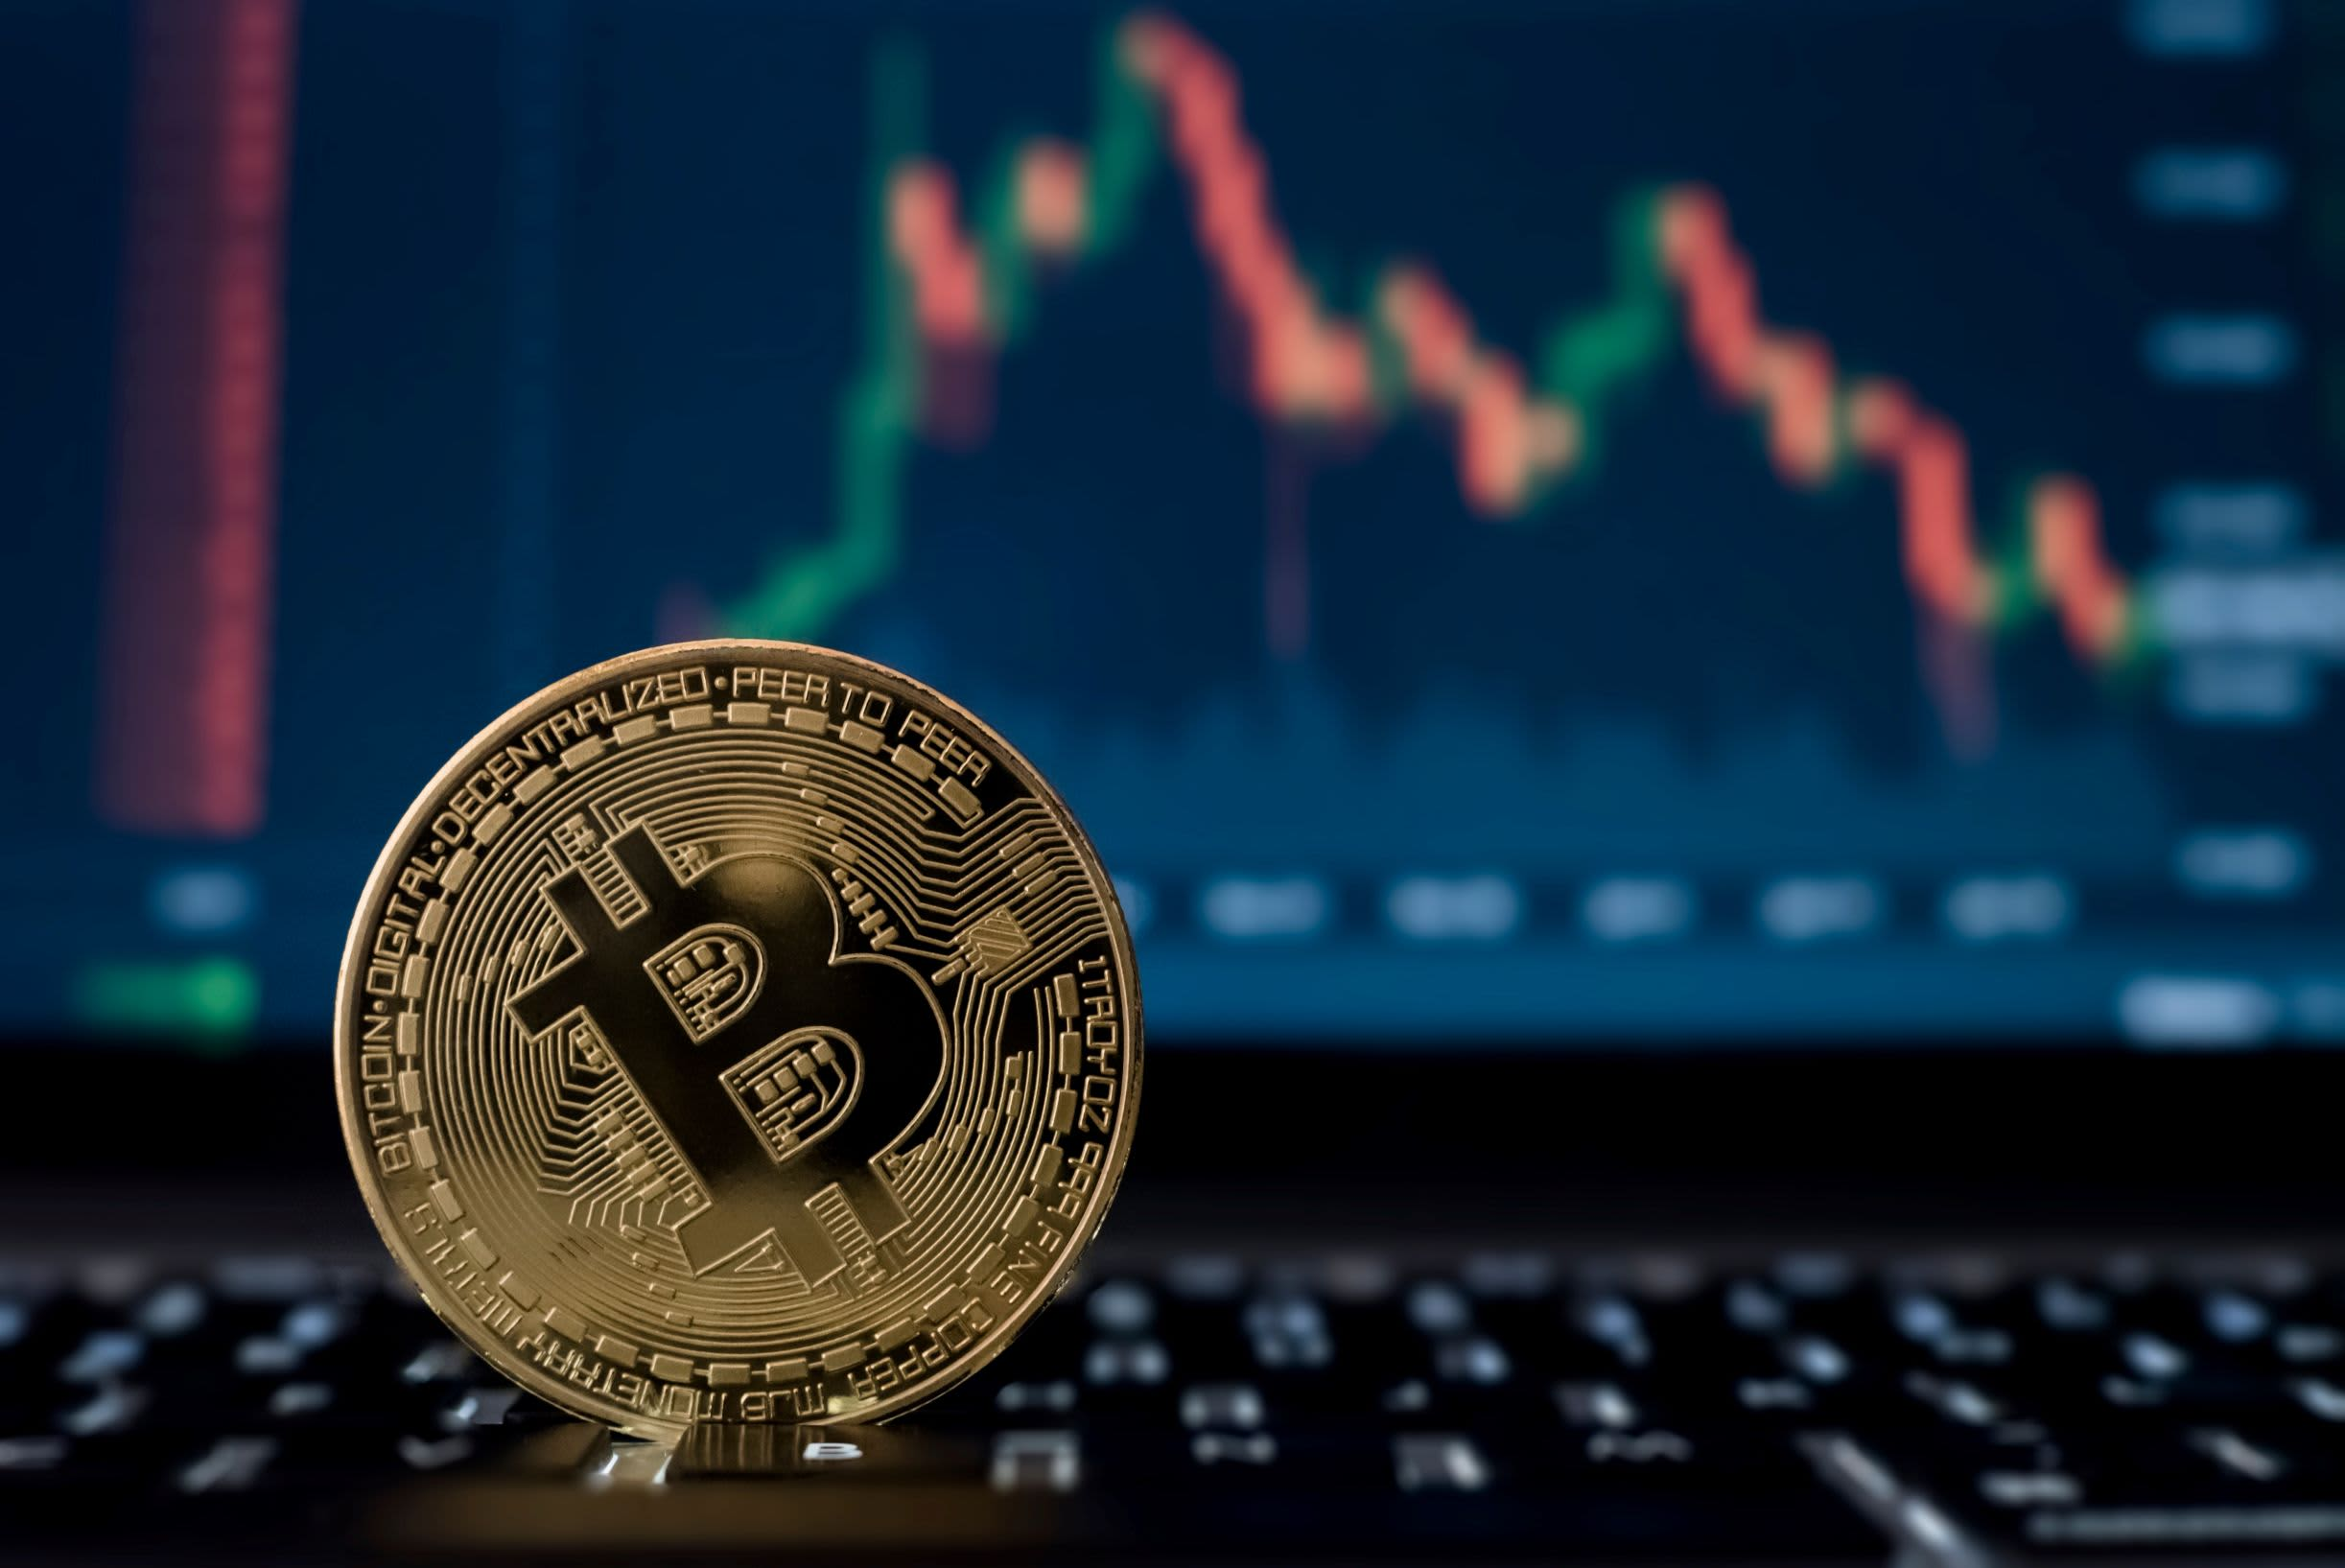 Here's what cryptocurrencies will look like in 50 years according to experts